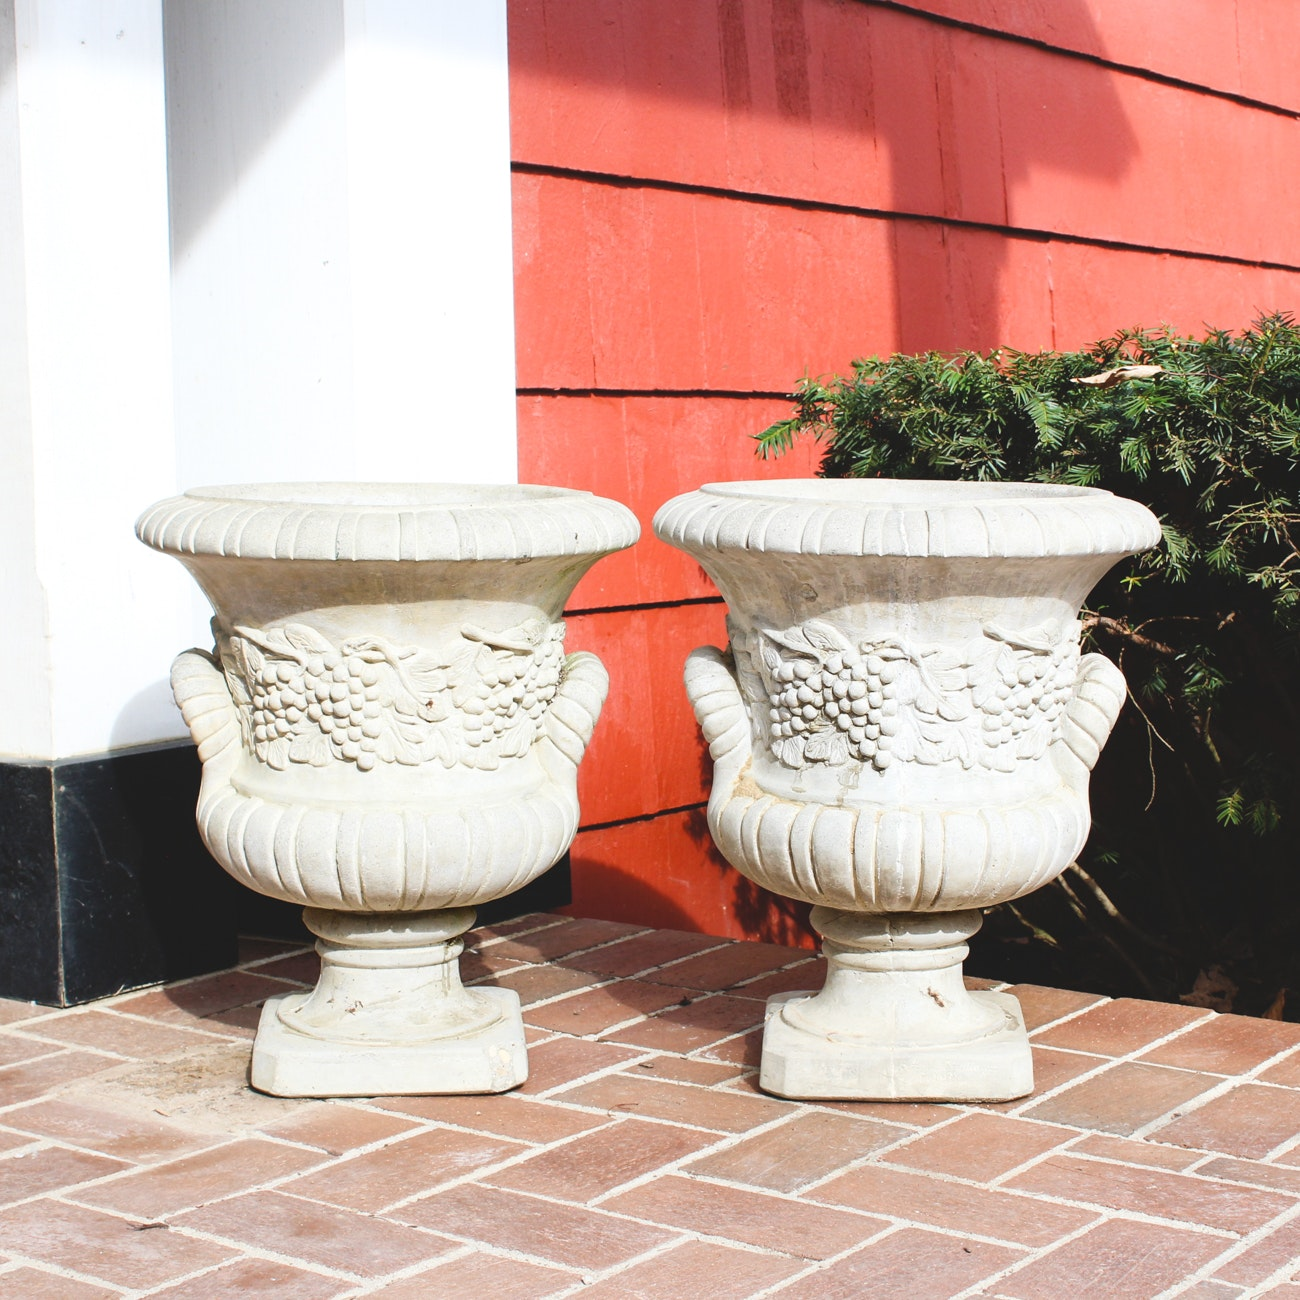 Henri Studio Cast Concrete Outdoor Planters